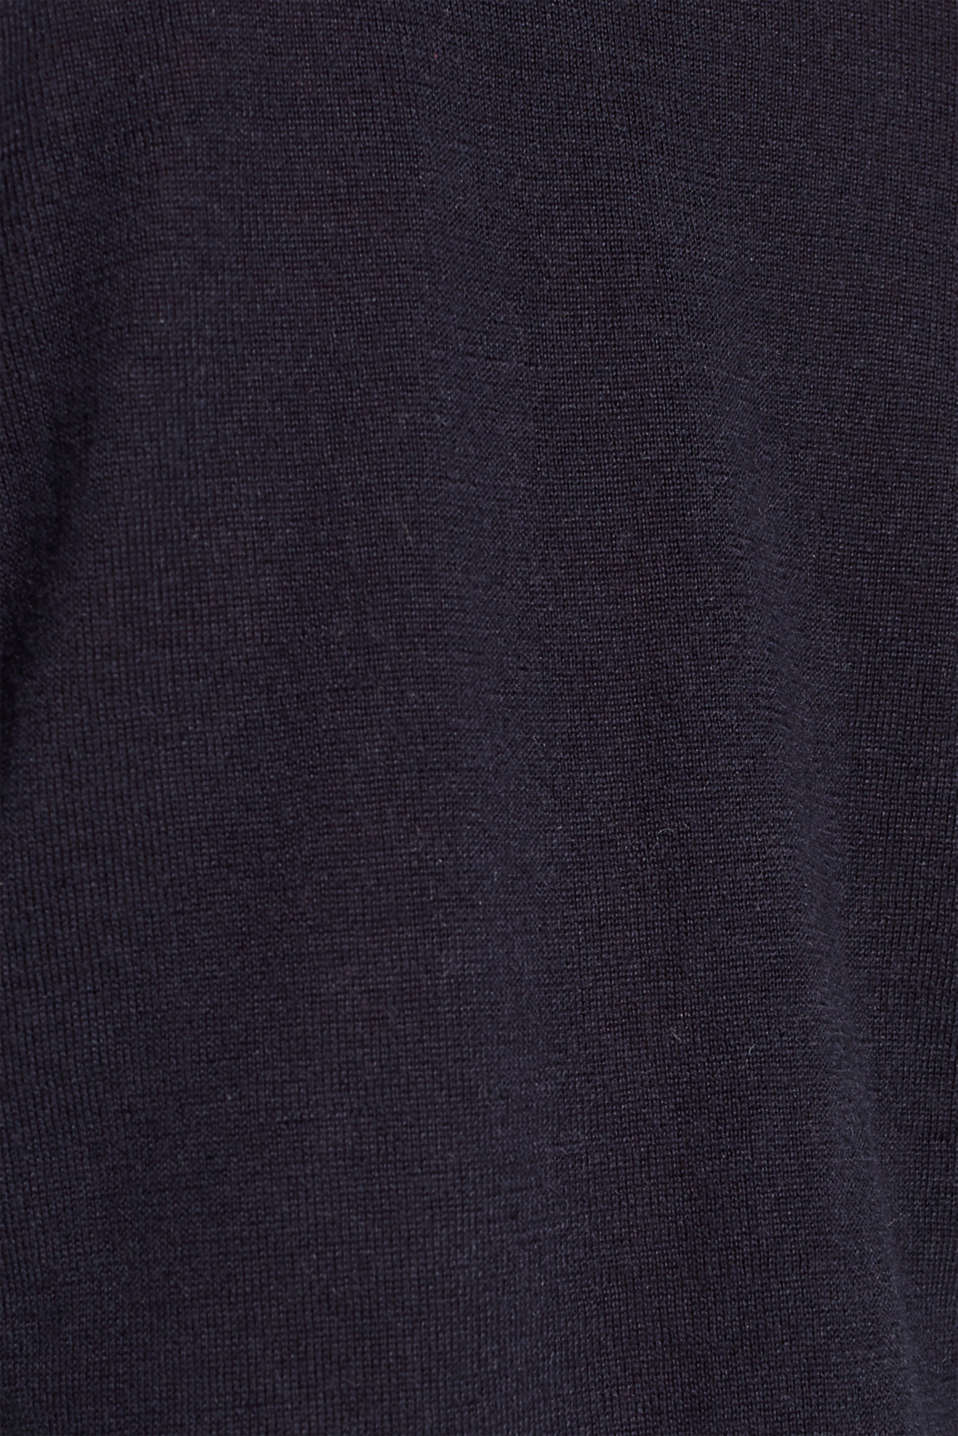 With merino wool: polo neck jumper, NAVY, detail image number 4